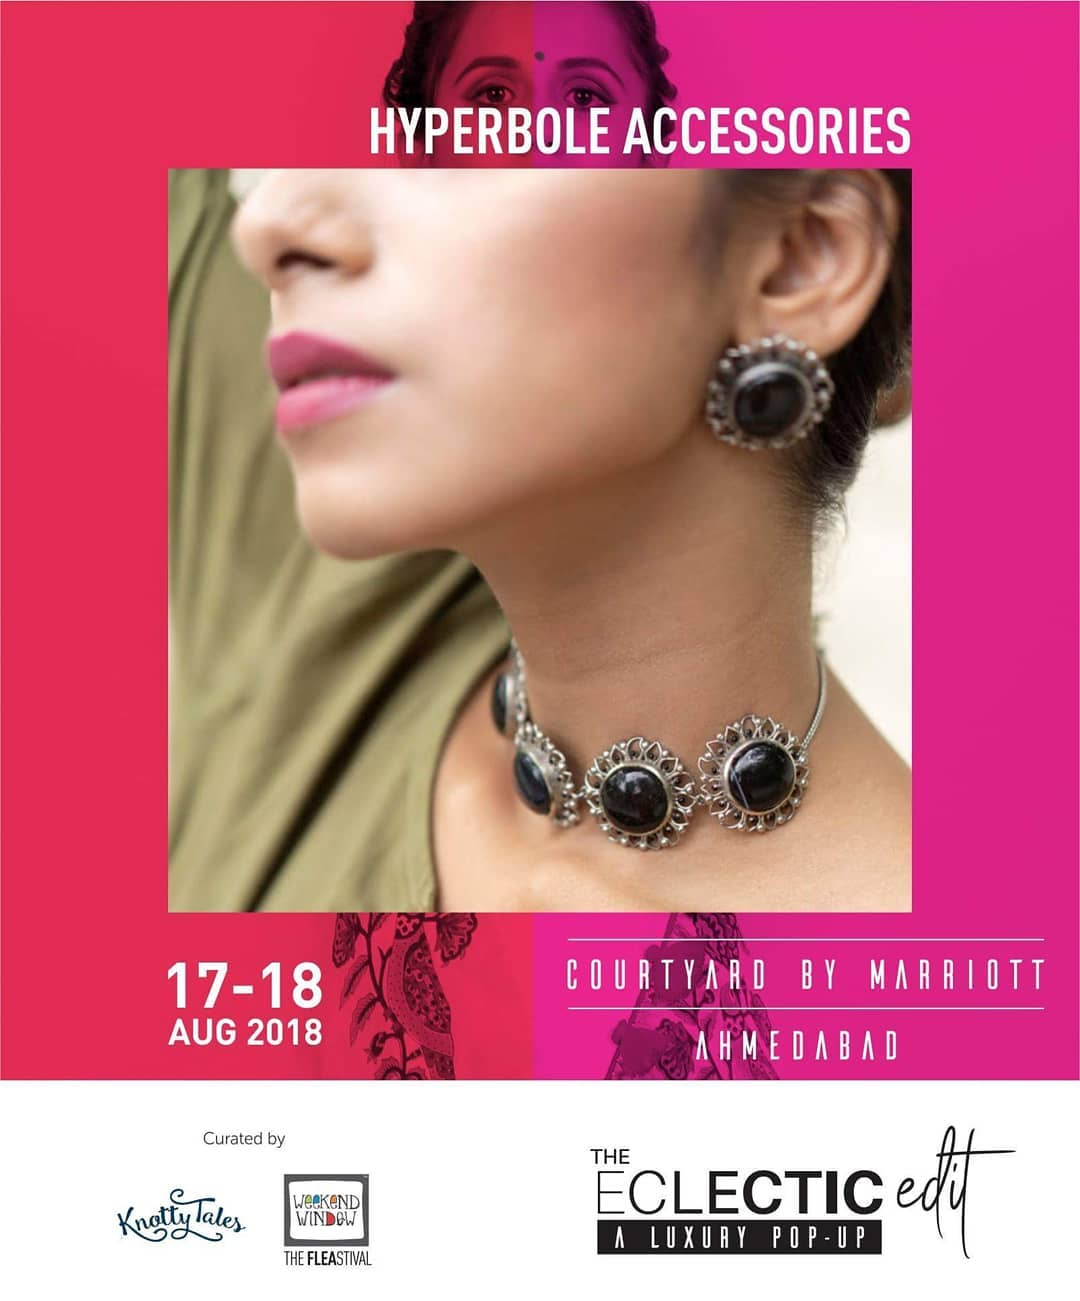 @hyperbole_accessories is back with their festive jewellery collection, this time its a beautiful melange of precious stones with pure silver metal. From cocktail jewellery to festive wear be it Diwali, Navratri or Weddings, they have it all!  Get exclusive designs which are adorned by celebrities like Jahnavi Kapoor, Ileana D'cruz, Parineeti Chopra, Anushka Sharma and many more! Exclusively at The Eclectic Edit - Season 3 curated @knottytales_kt & @weekendwindow .  #hyperboleaccessories #statementjewelry #handmadejewelry #handcrafted #semipreciousstones #madeinindia #silver #silverjewelry #studearrings #floral #love #tassel #tasselearrings #weekendwindow #knottytales #theeclecticedit